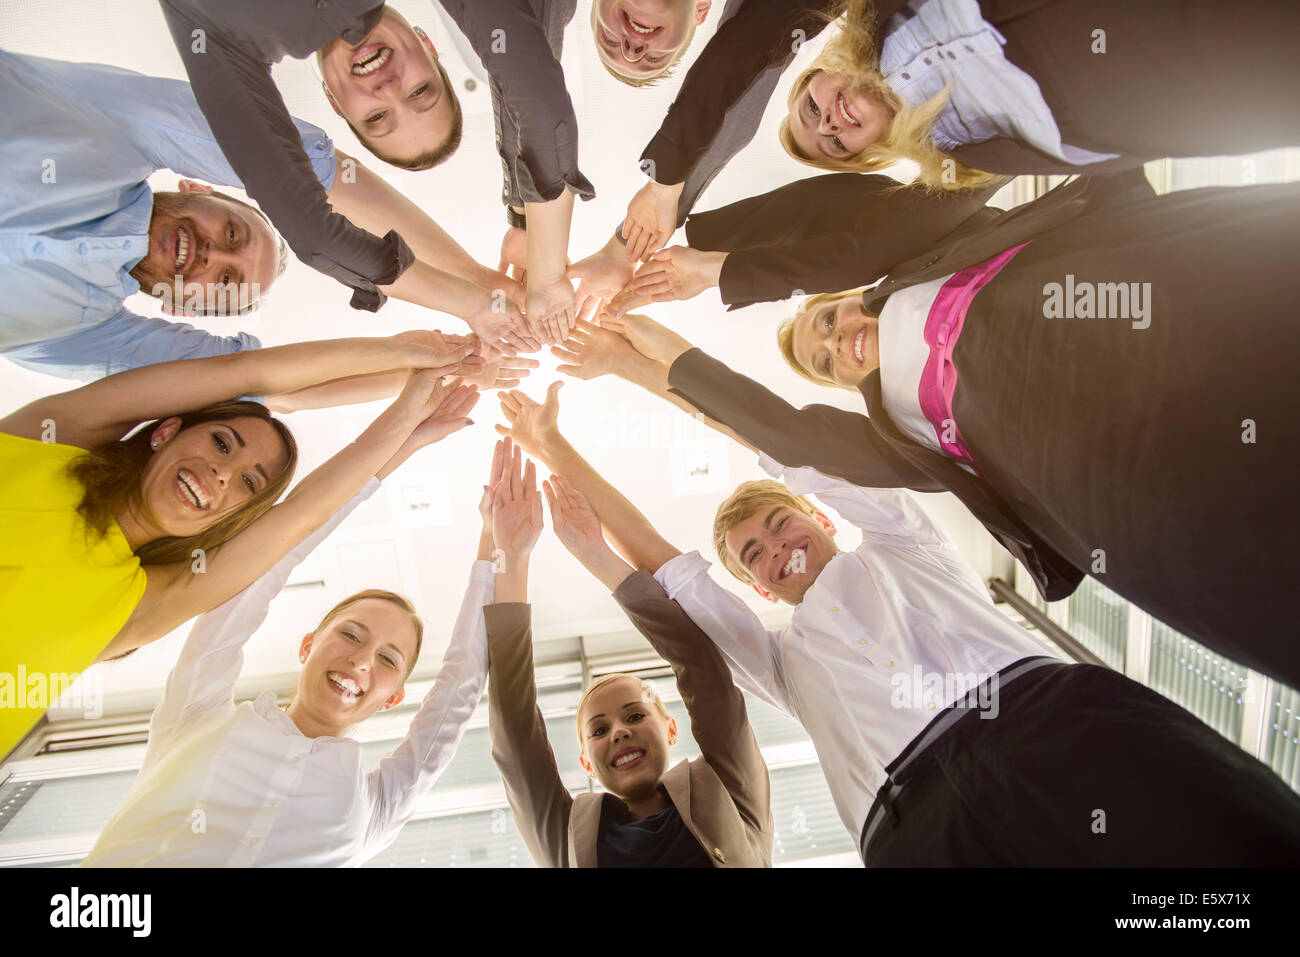 Worms eye view of seven business men and women in a circle holding hands in office - Stock Image